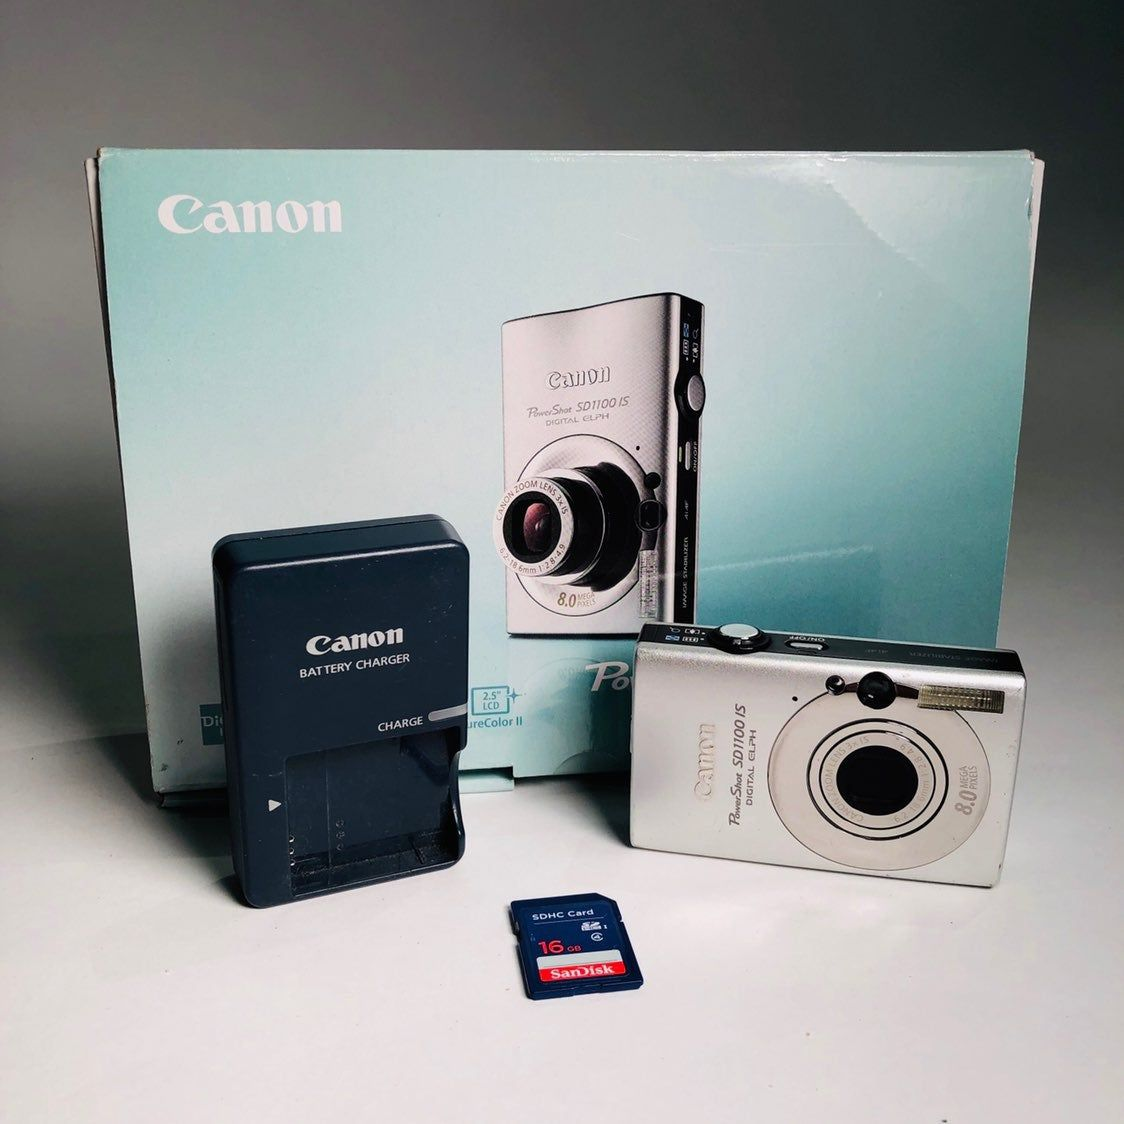 Canon Powershot Digital Elph Sd1100 Is 8 0mp Digital Camera Includes Camera Charger Battery 16gb Memory Card I Digital Camera Canon Powershot Memory Cards